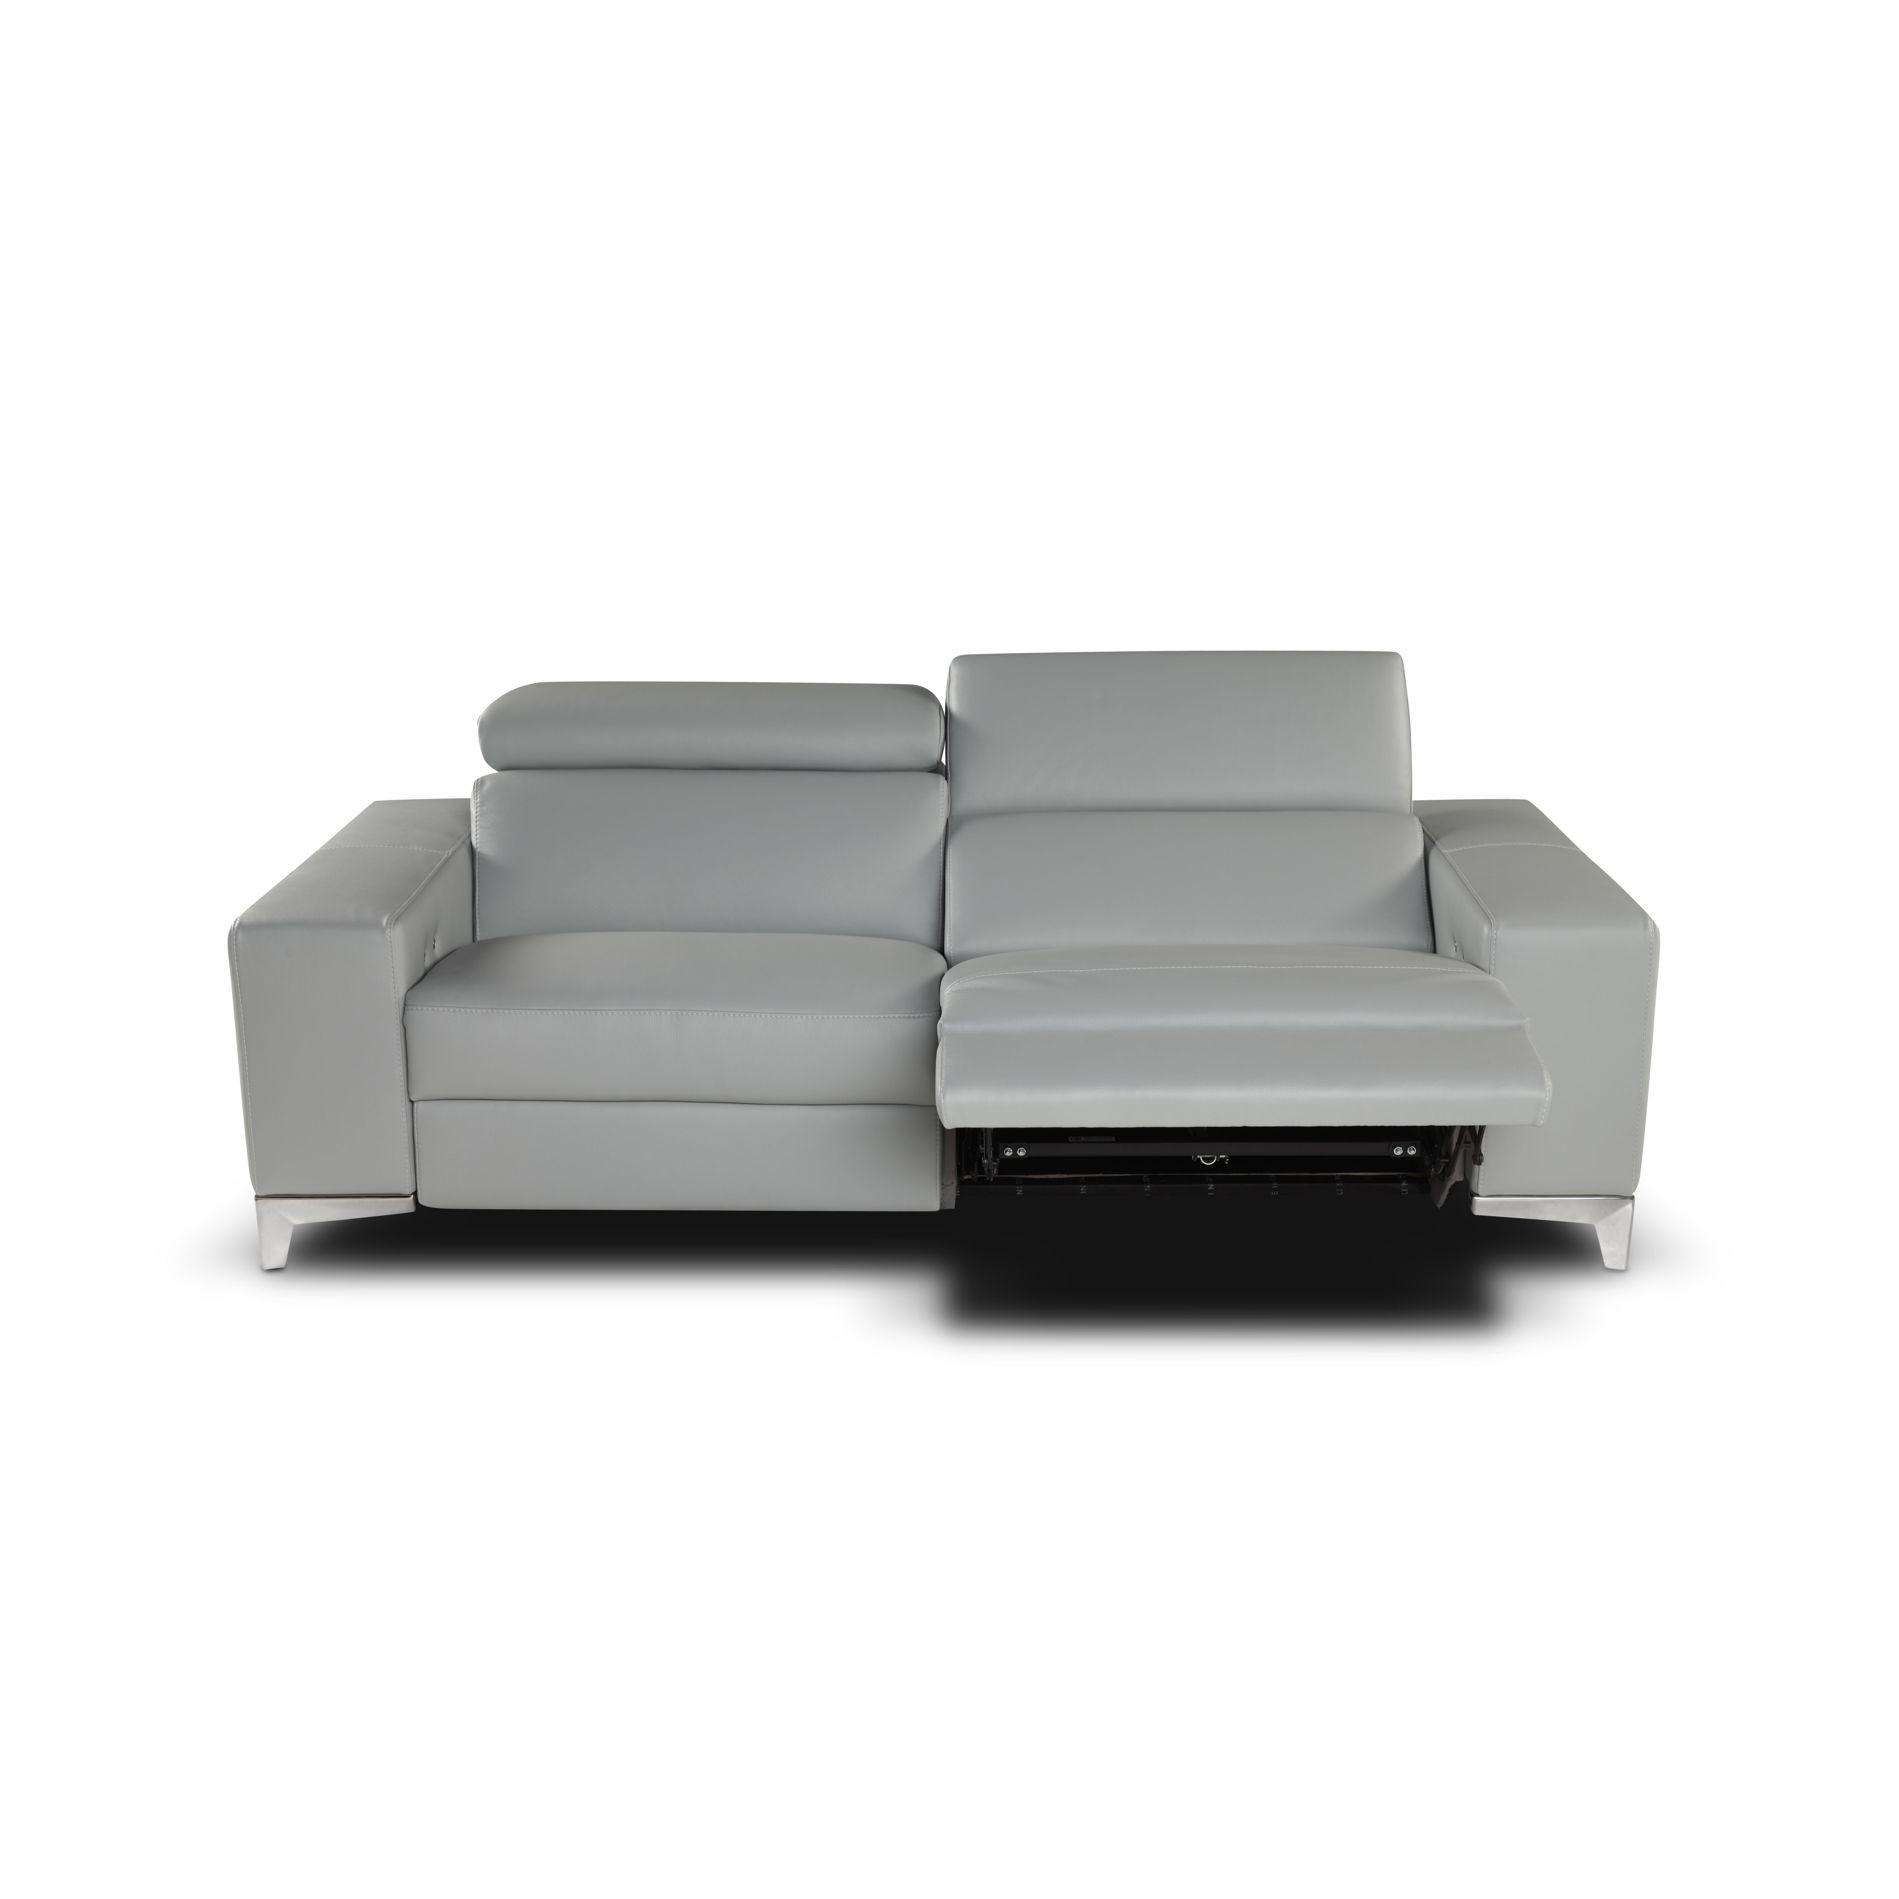 Queen Leather Sofa Set | Giuseppe&giuseppe For Italian Recliner Sofas (View 15 of 20)